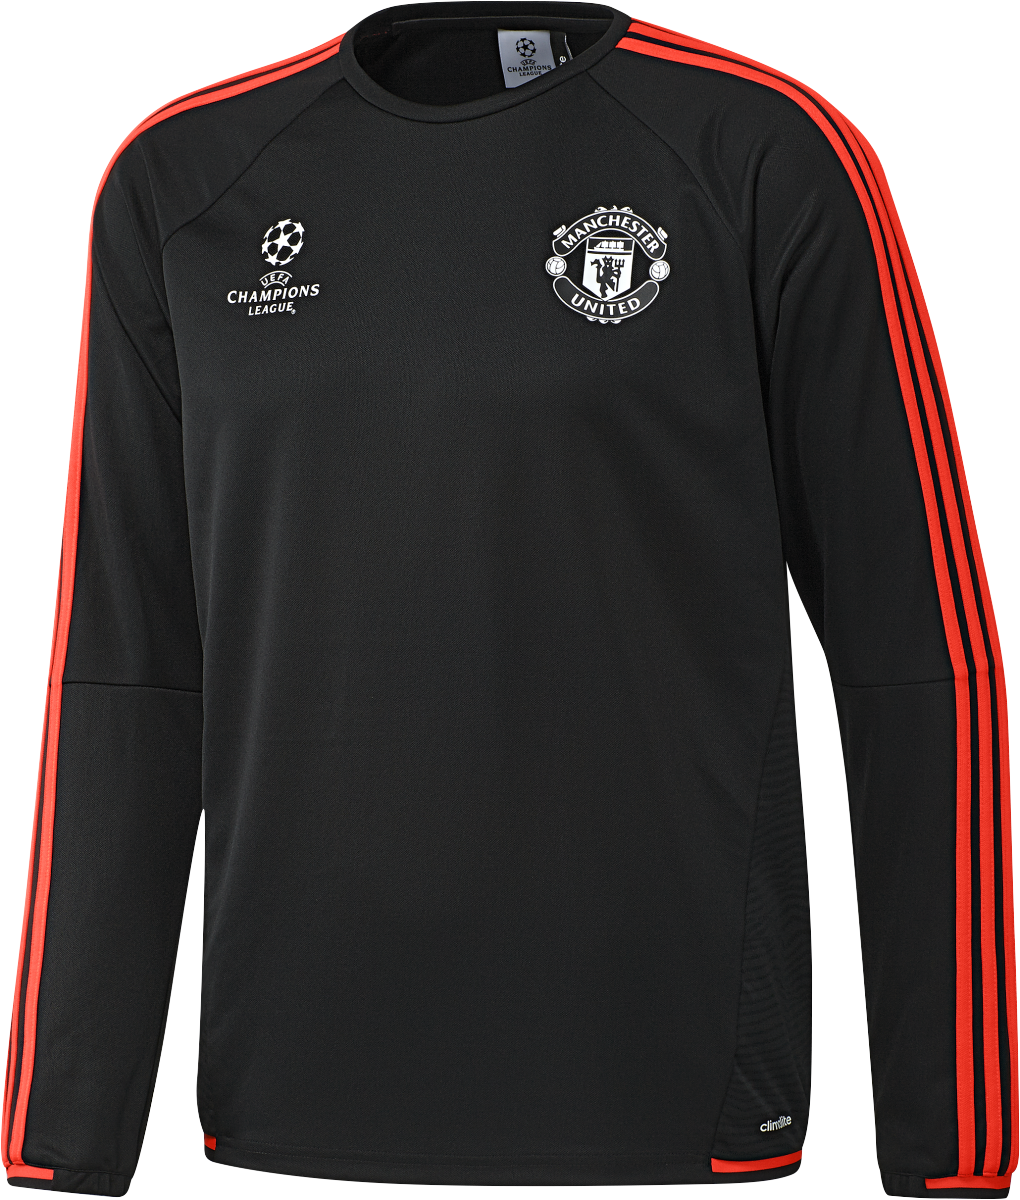 08c8c842d ADIDAS MANCHESTER UNITED EU TRAINING TOP 2015 2016 - Manchester United -  CLUB ETRANGERS